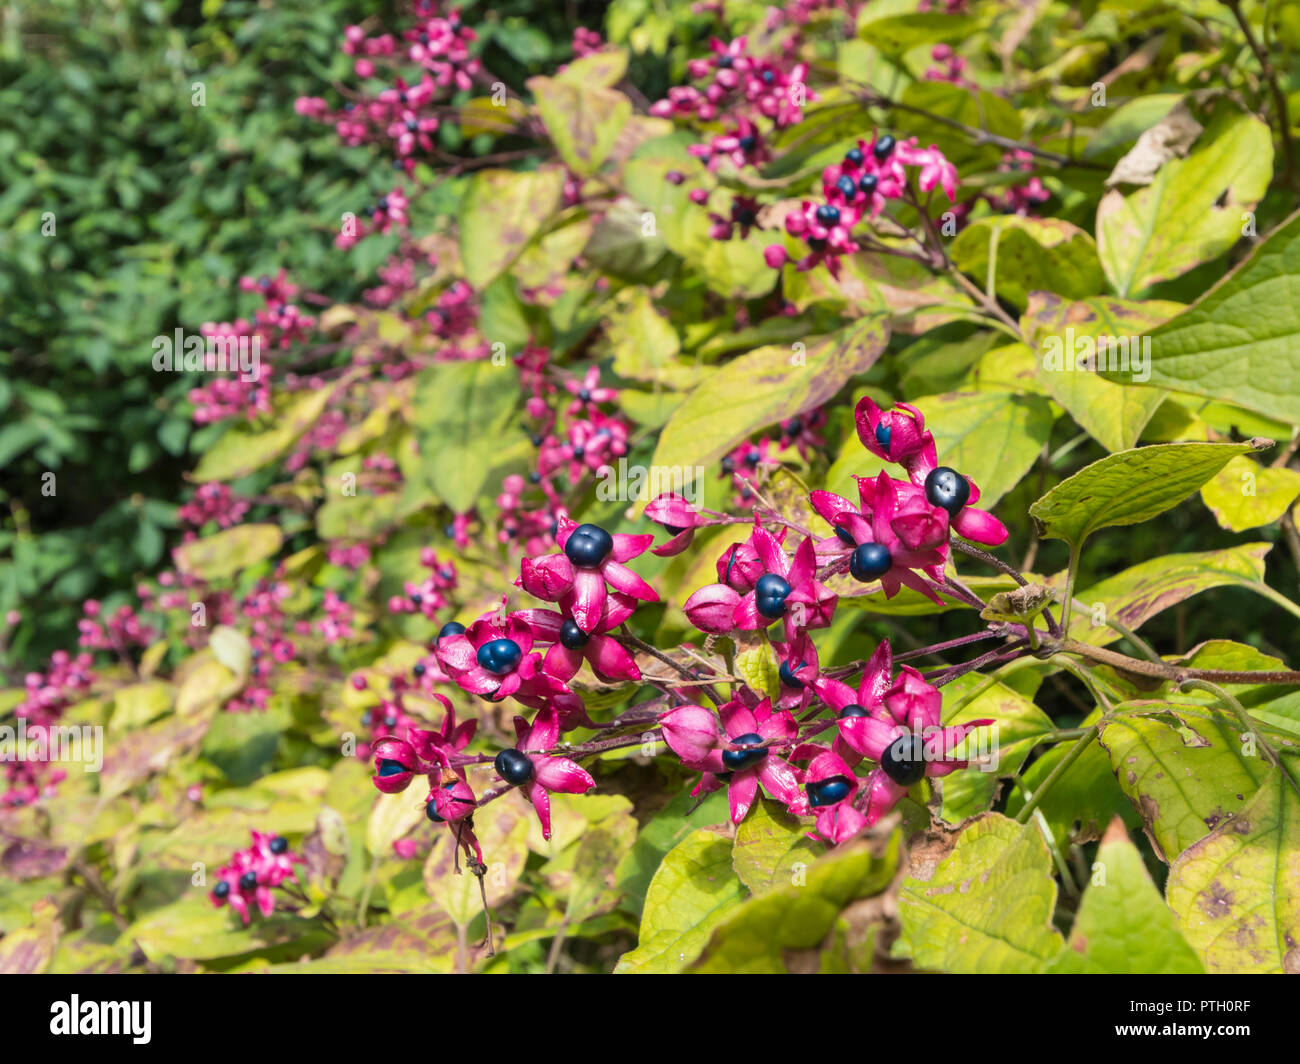 Clerodendrum Trichotomum var. fargesii (Farges harlequin glorybower) shrub in Autumn showing crimson calyces with turquoise berries, in Sussex, UK - Stock Image